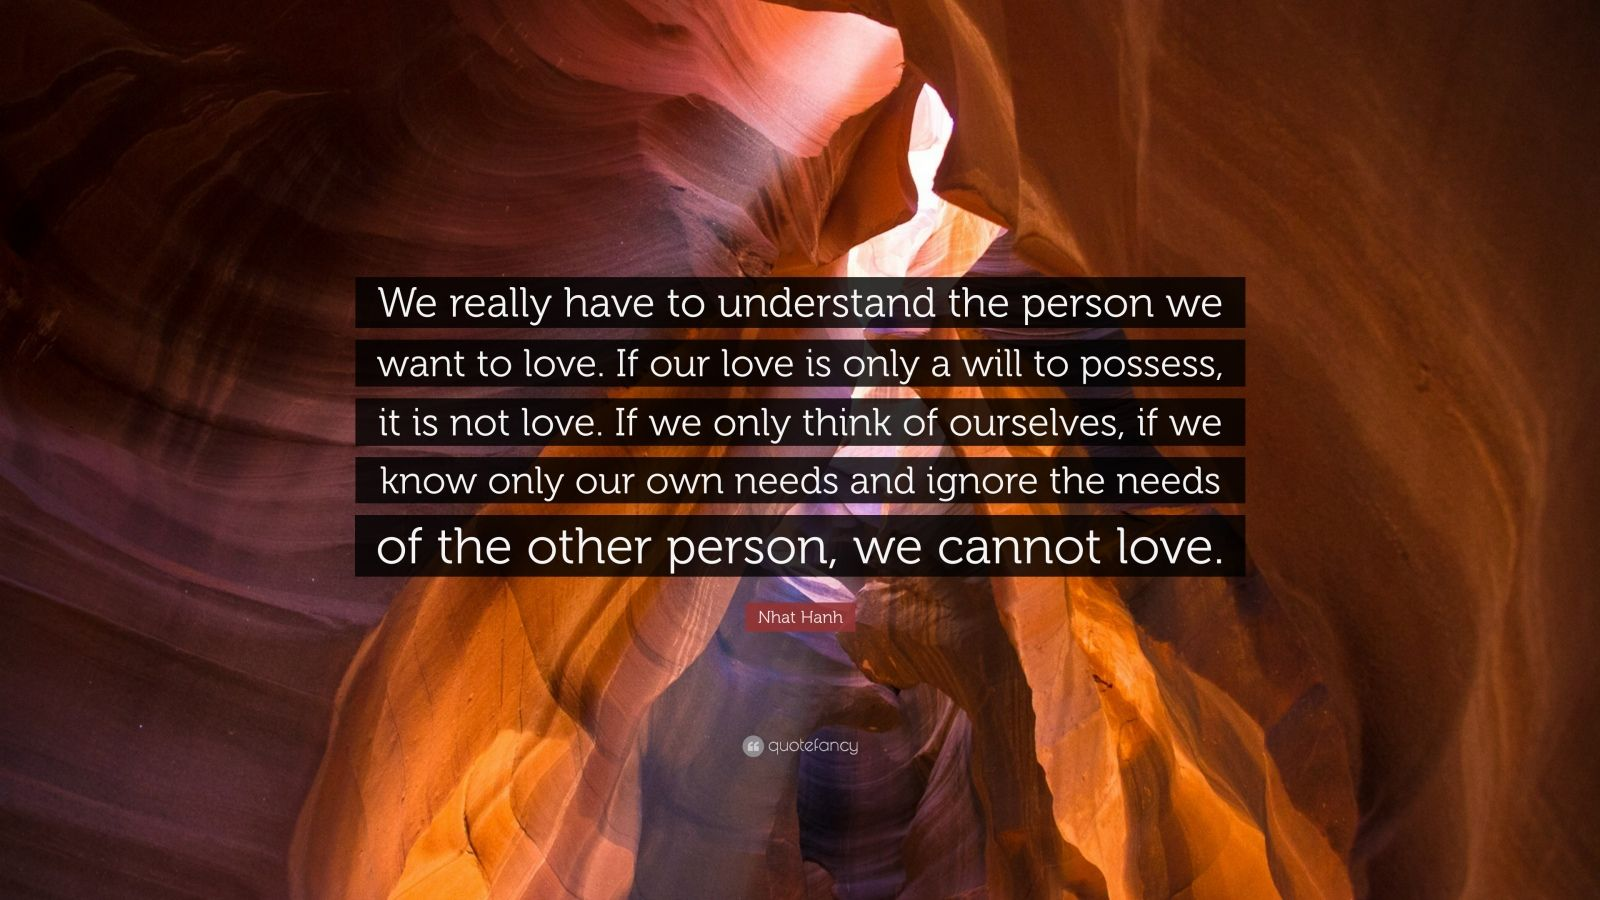 "Nhat Hanh Quote: ""We really have to understand the person we want to love. If our love is only a will to possess, it is not love. If we only think of ourselves, if we know only our own needs and ignore the needs of the other person, we cannot love."""